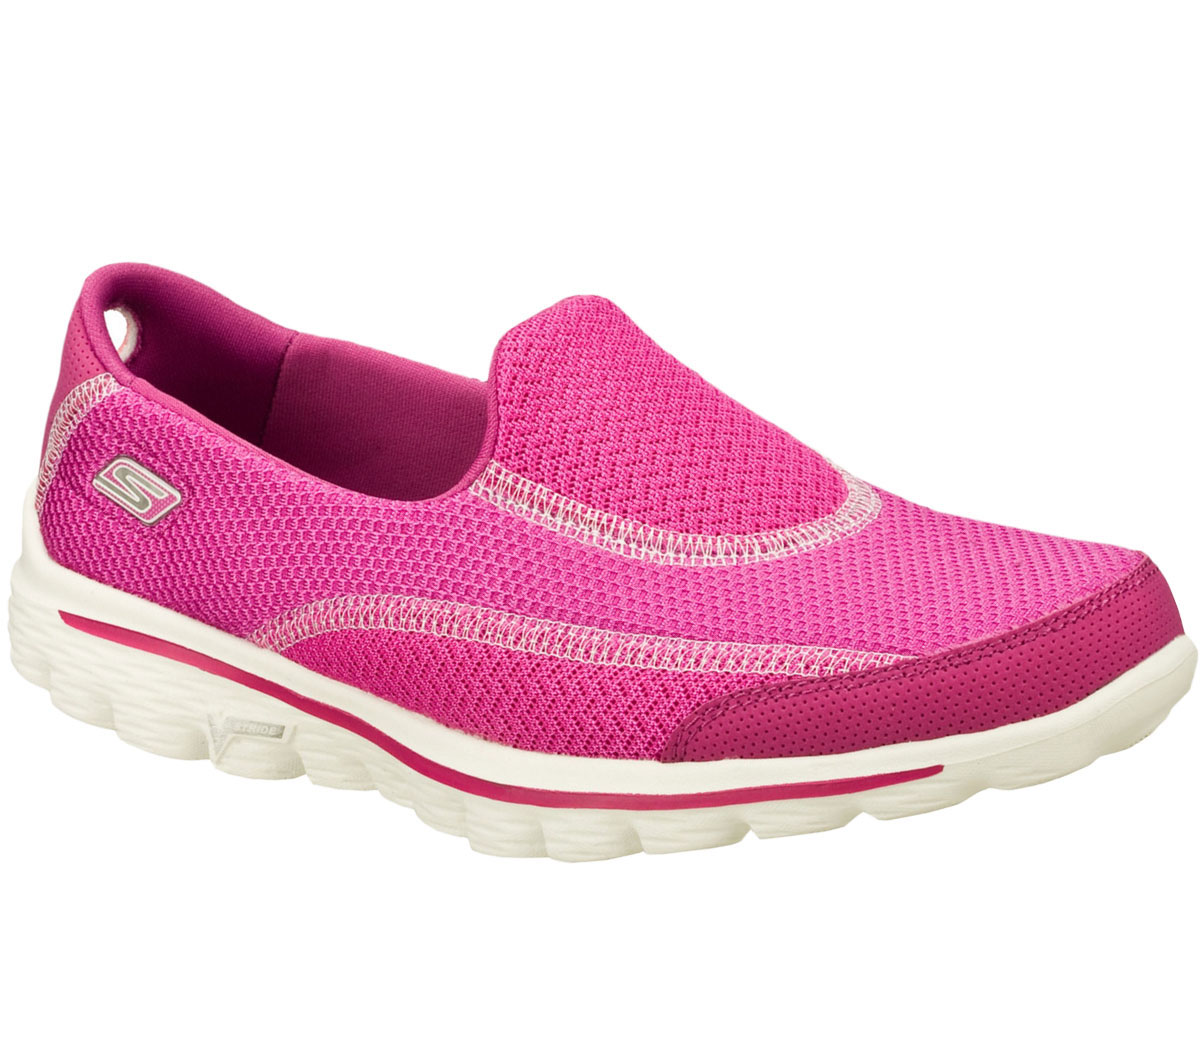 Womens Trainers And Walking Shoes Uk